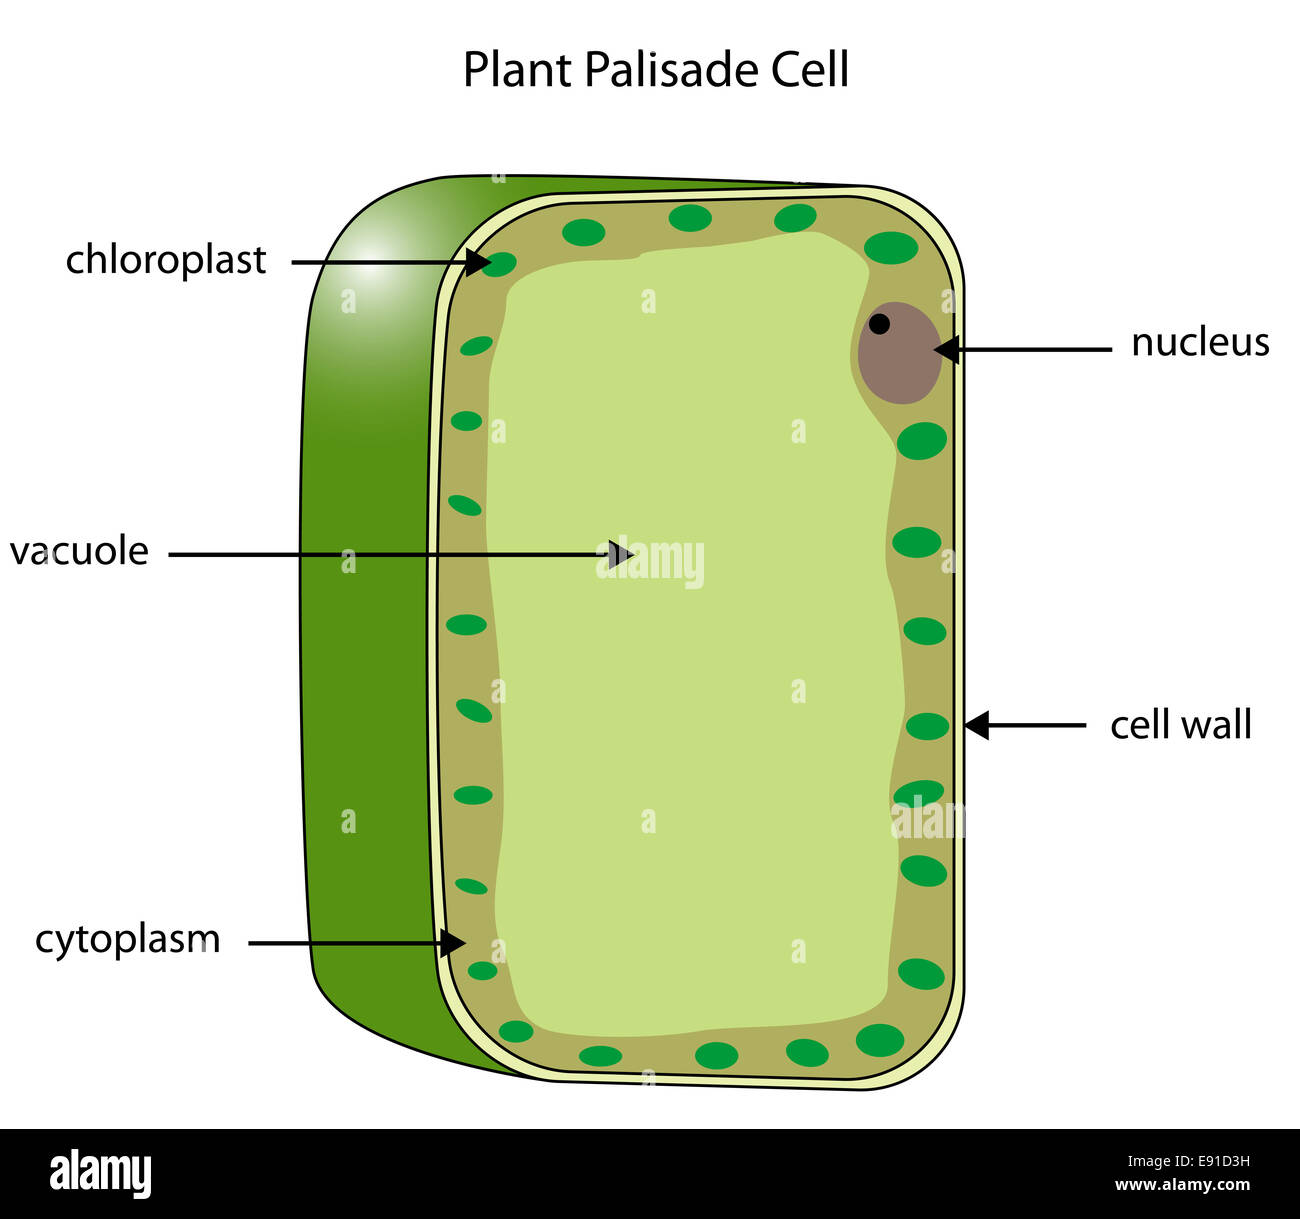 labeled diagram of a plant palisade cell where photosynthesis takes rh alamy com plant palisade cell diagram palisade mesophyll cell diagram